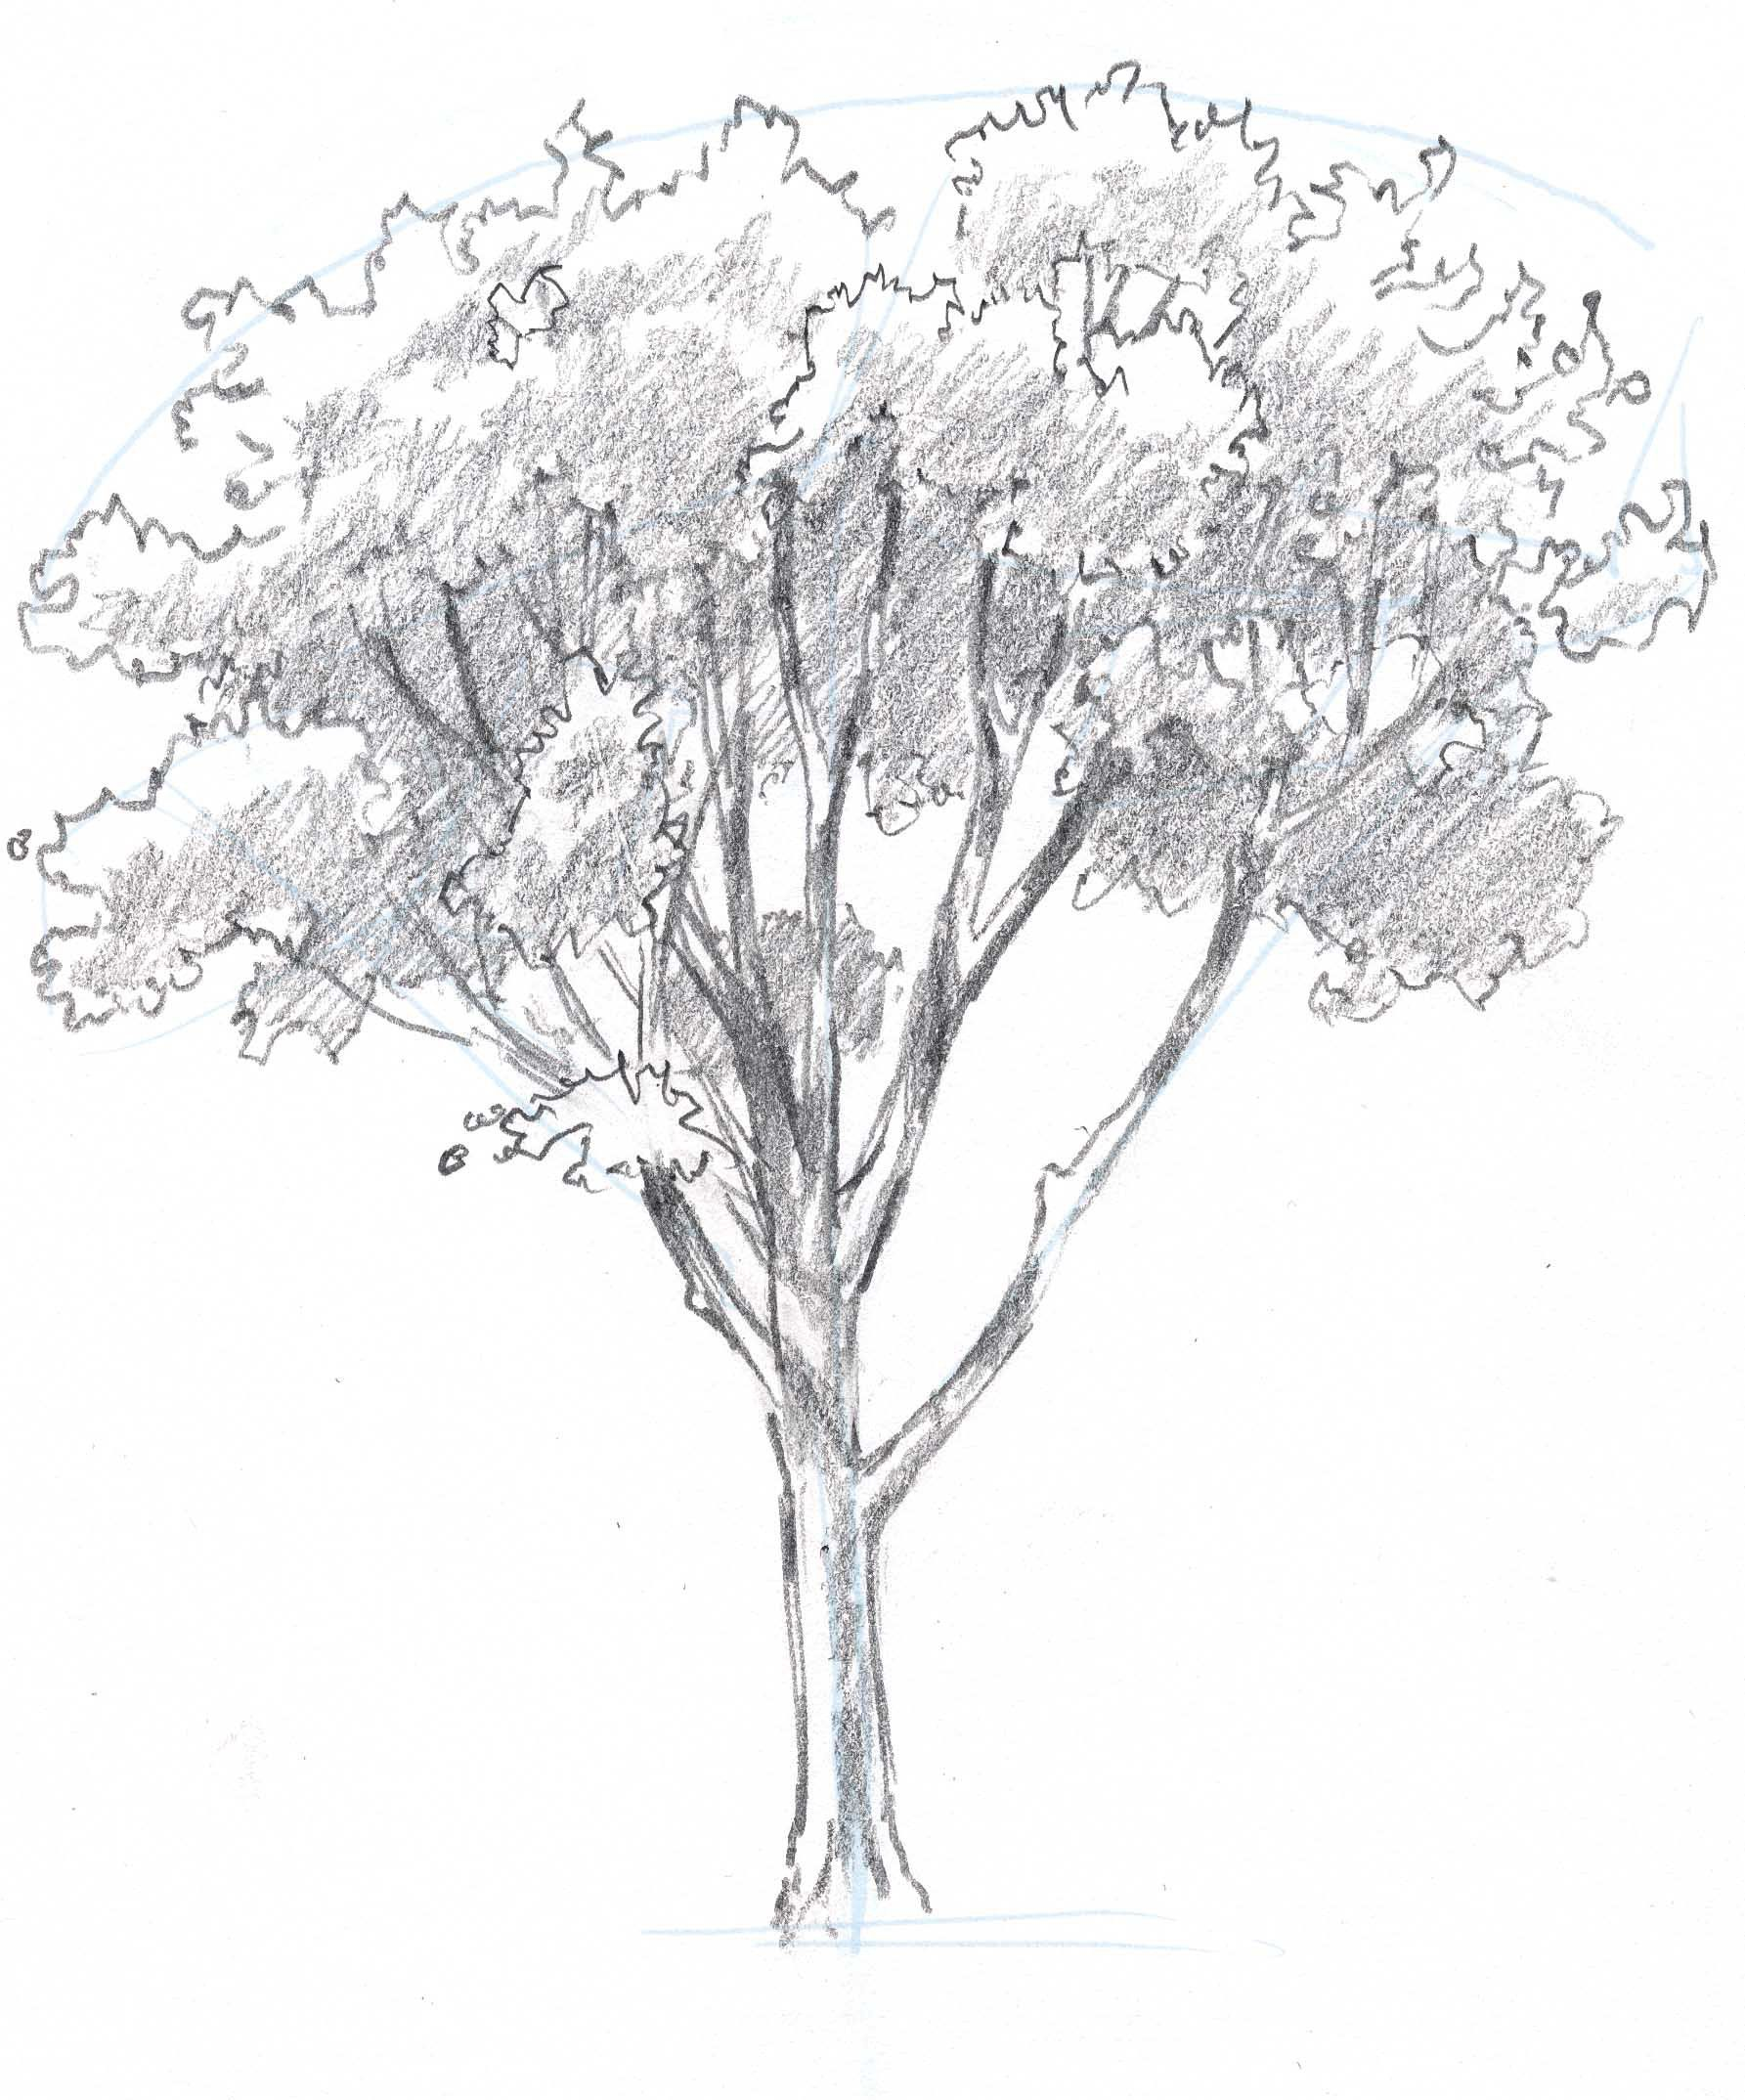 Tree Top Drawing at GetDrawings.com | Free for personal ...